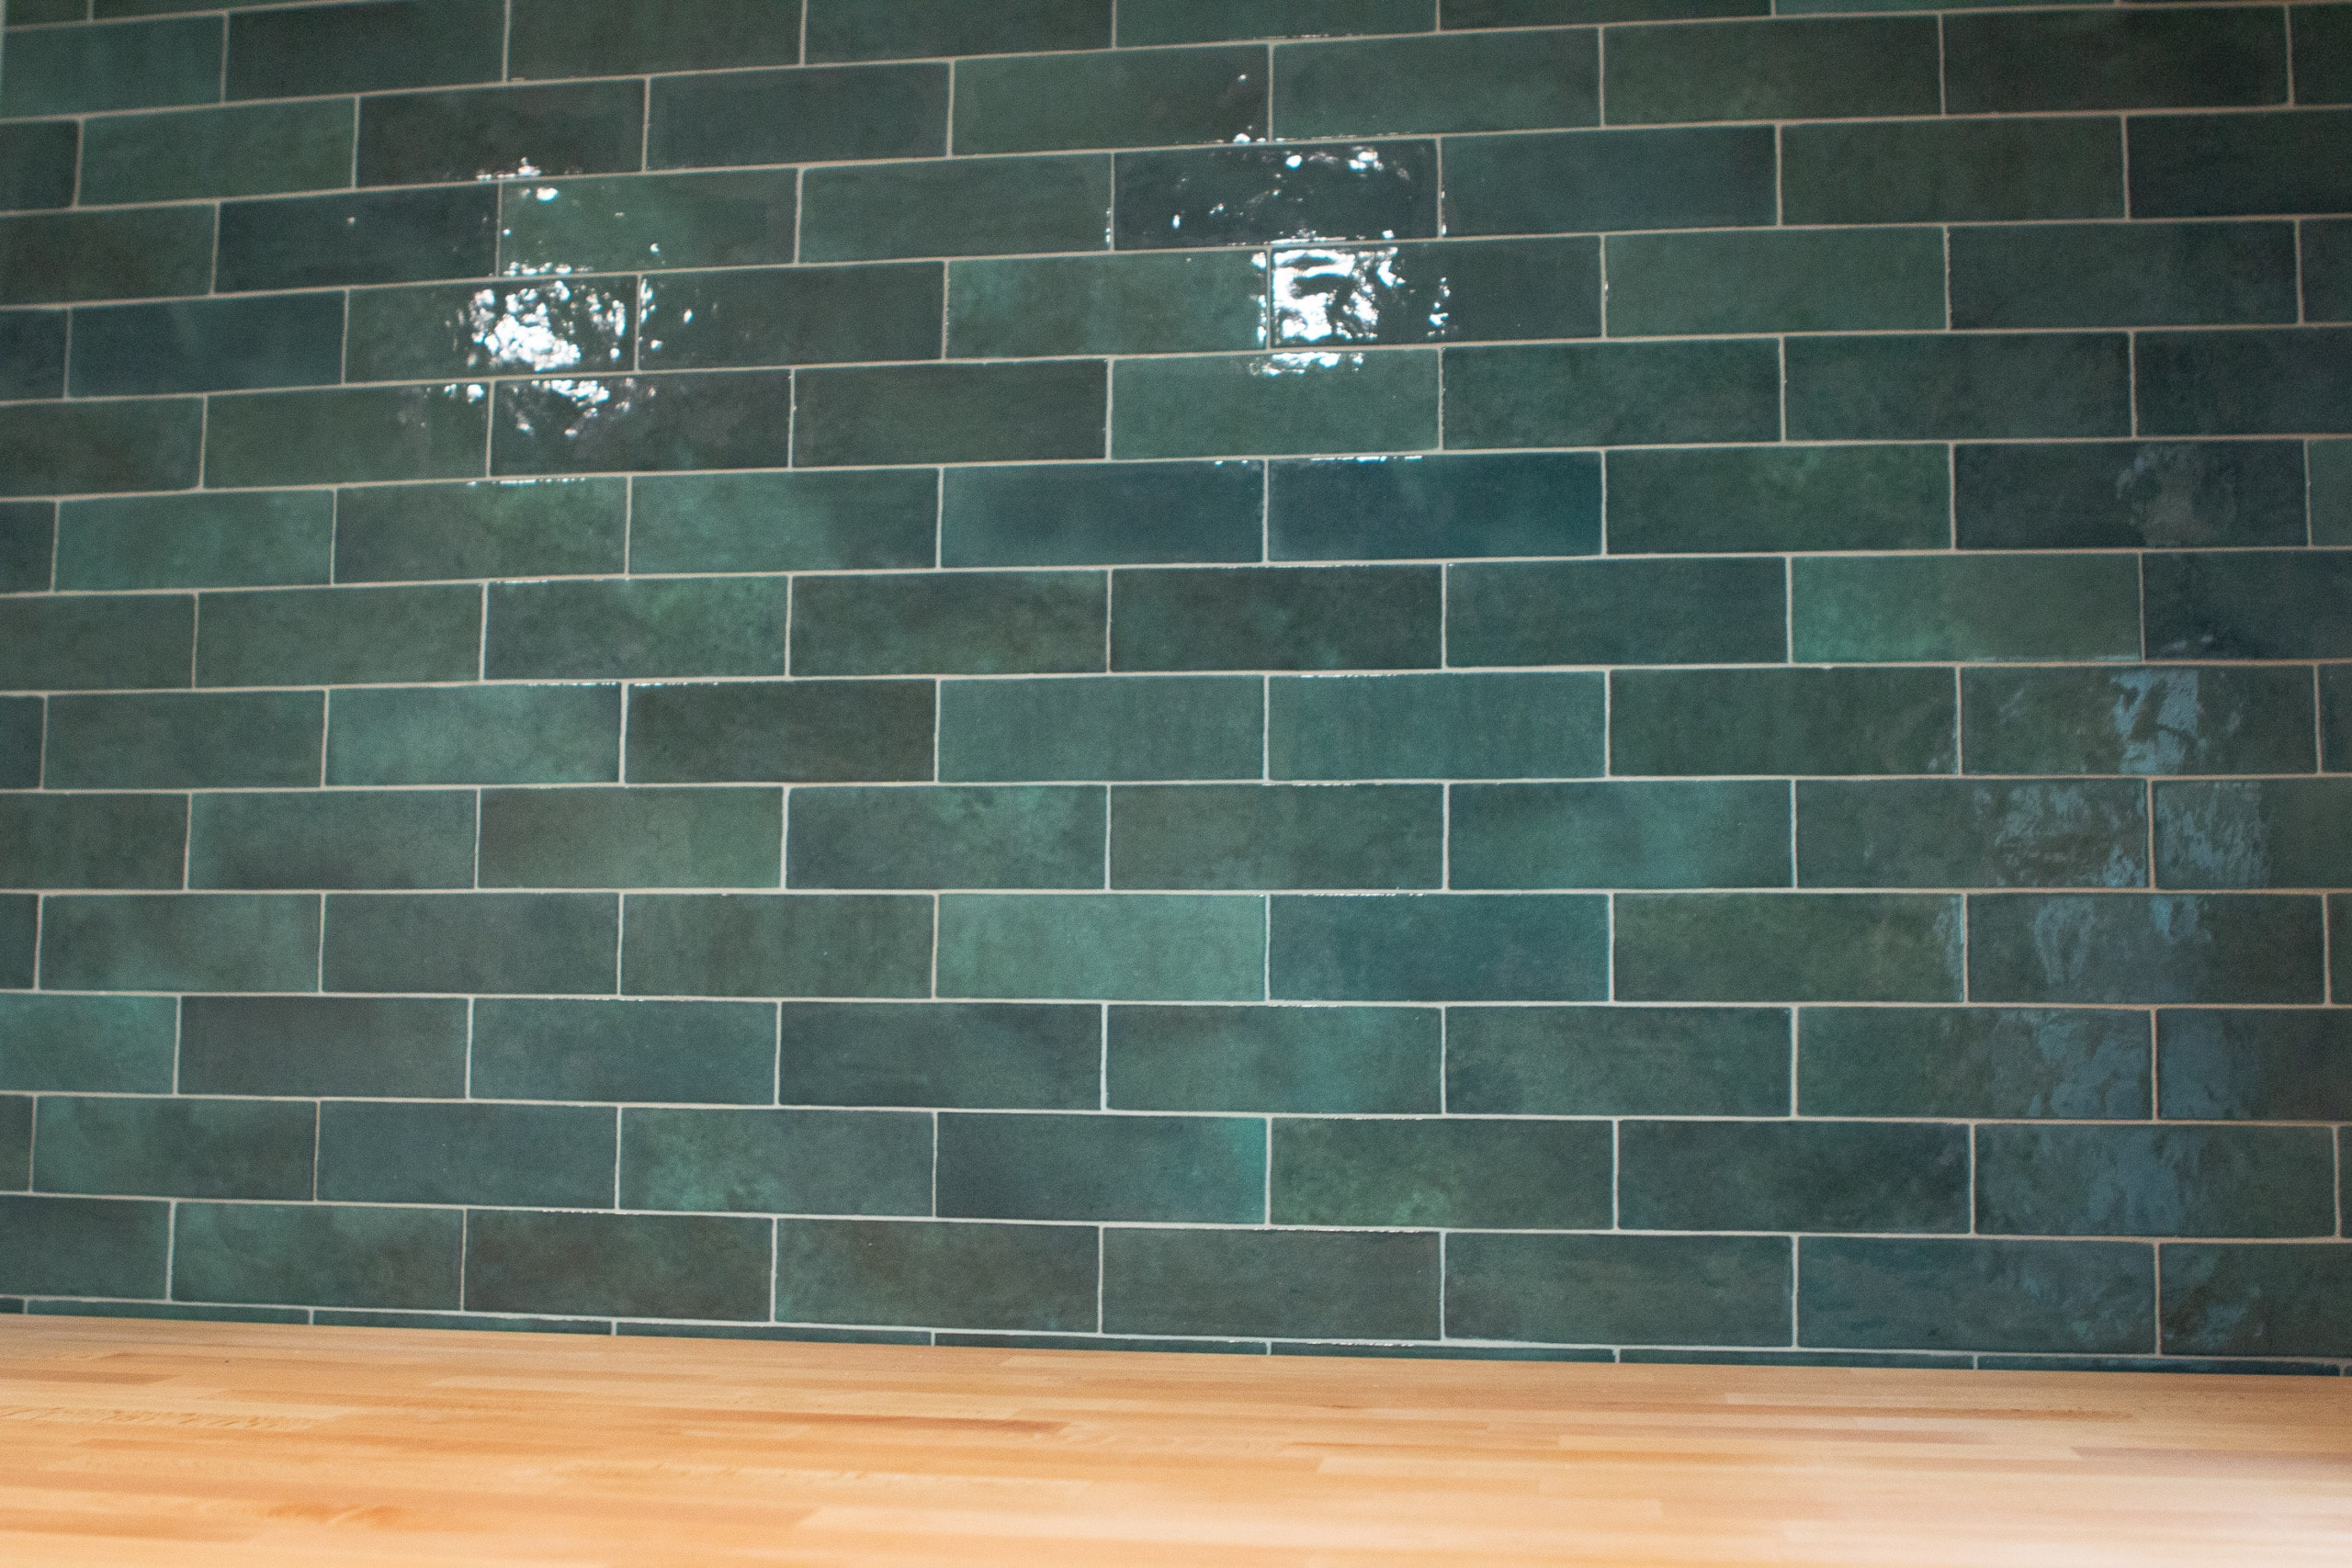 How to remove grout haze on tile